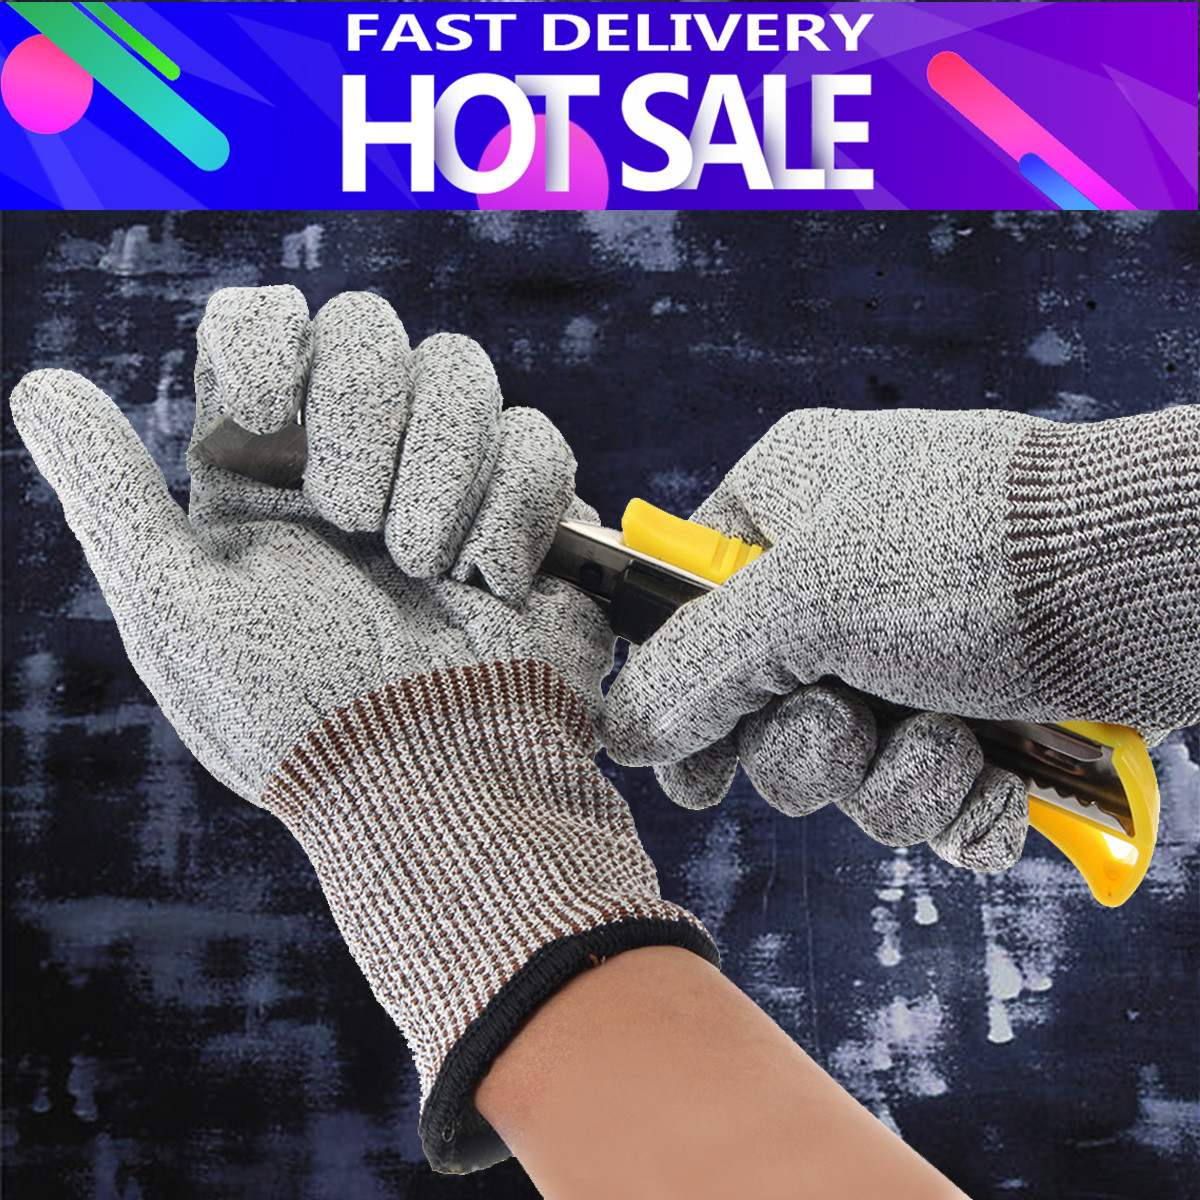 Safety Cut Proof Stab Resistant Stainless Steel Wire Metal Mesh Butcher Gloves Cut-Resistant Safety Gloves